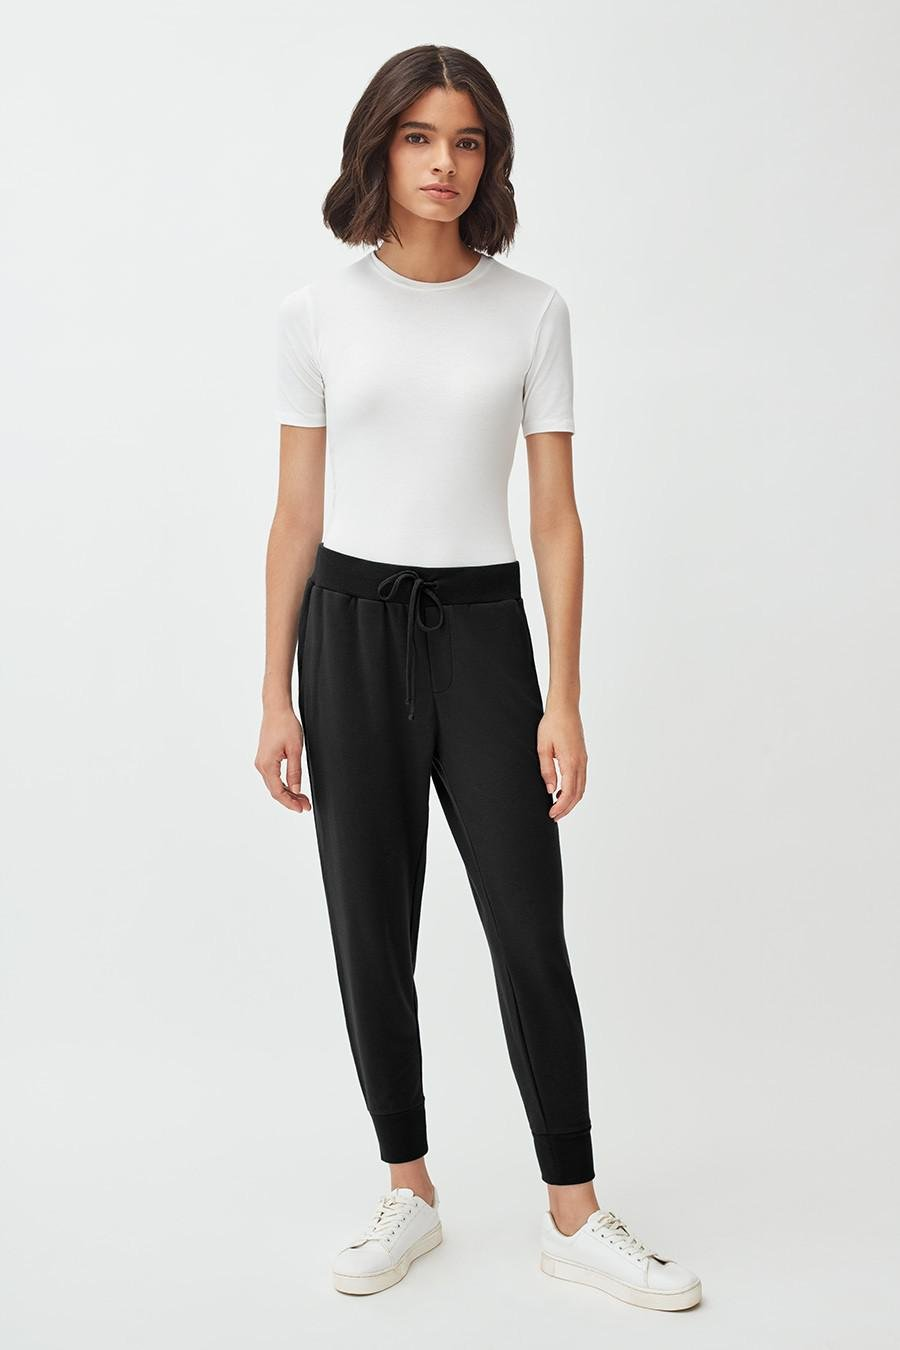 Women's French Terry Tapered Lounge Pant in Black | Size: 1